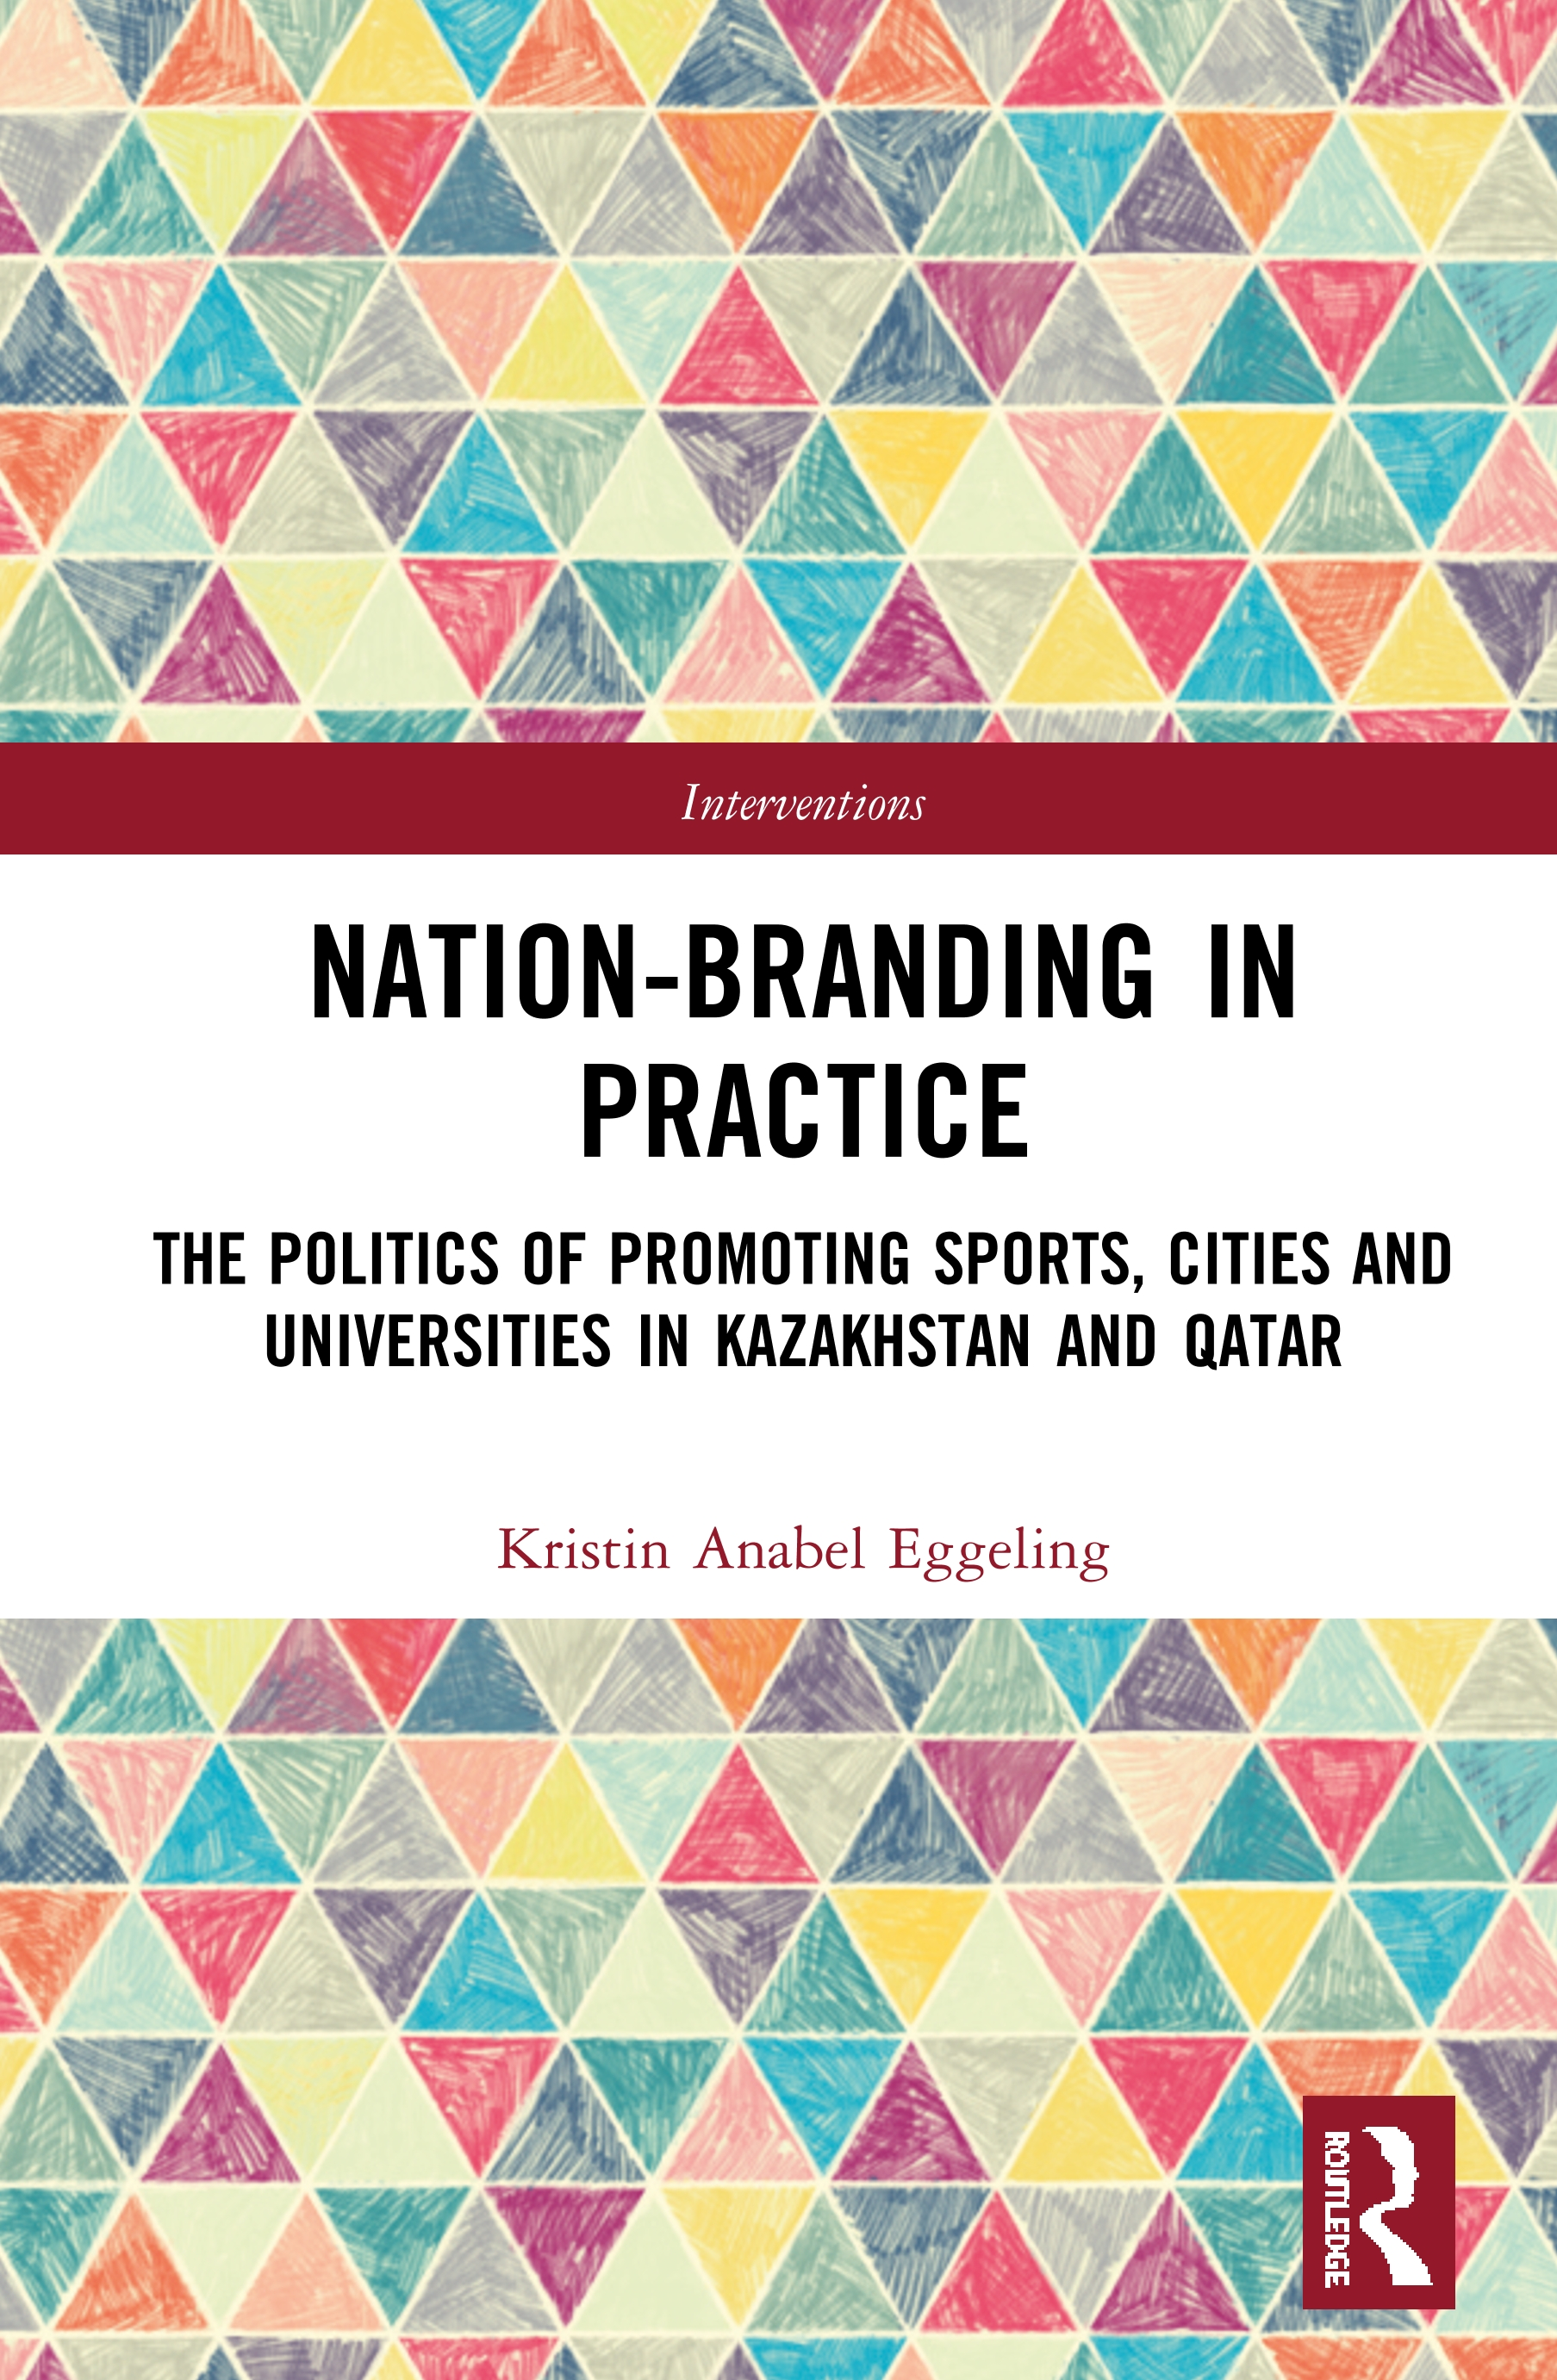 Nation-branding in Practice: The Politics of Promoting Sports, Cities and Universities in Kazakhstan and Qatar book cover